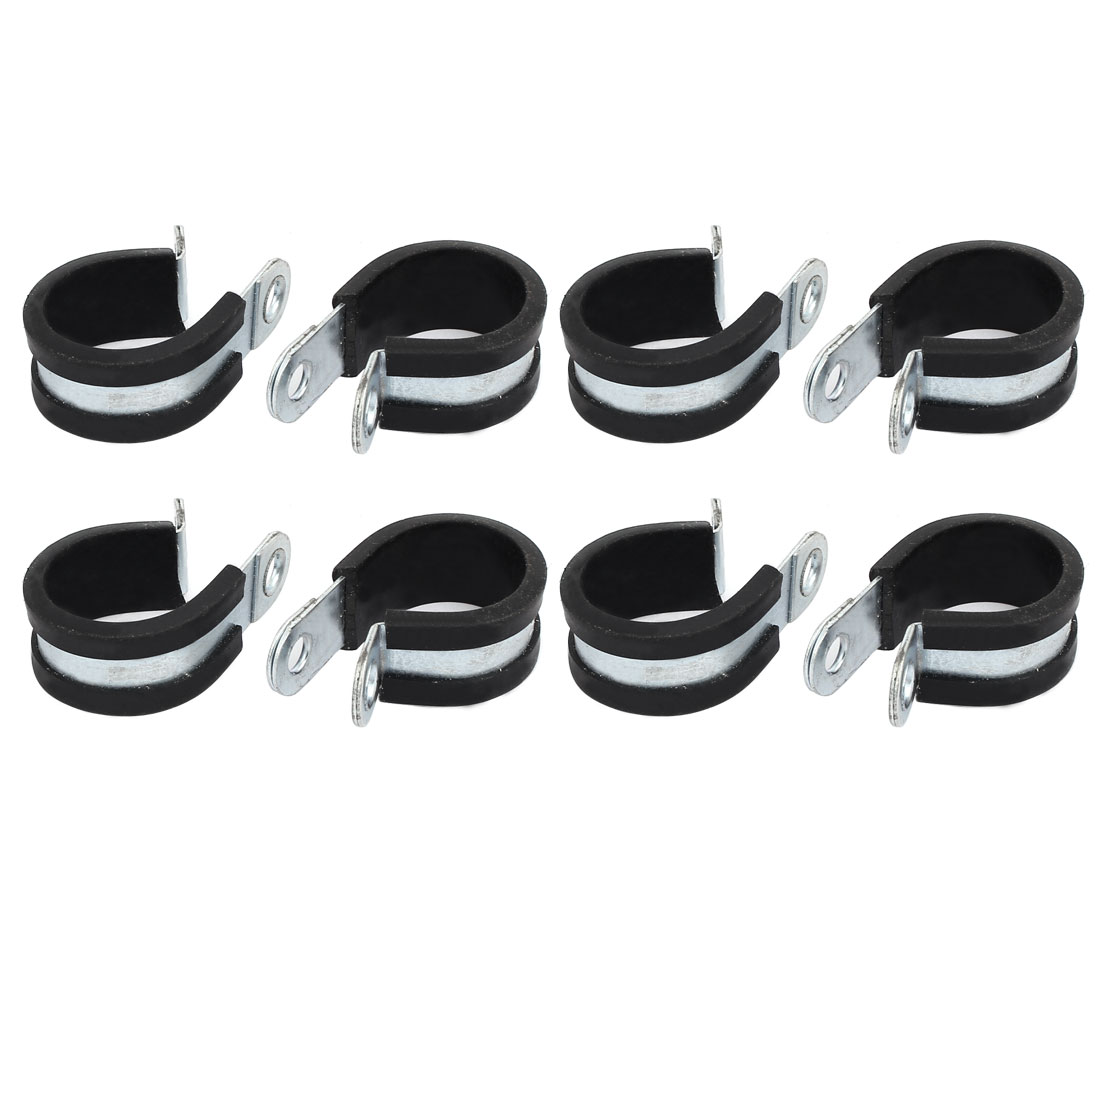 25mm Dia Rubber Lined R Shaped Zinc Plated Pipe Clip Cable Clamp 8pcs